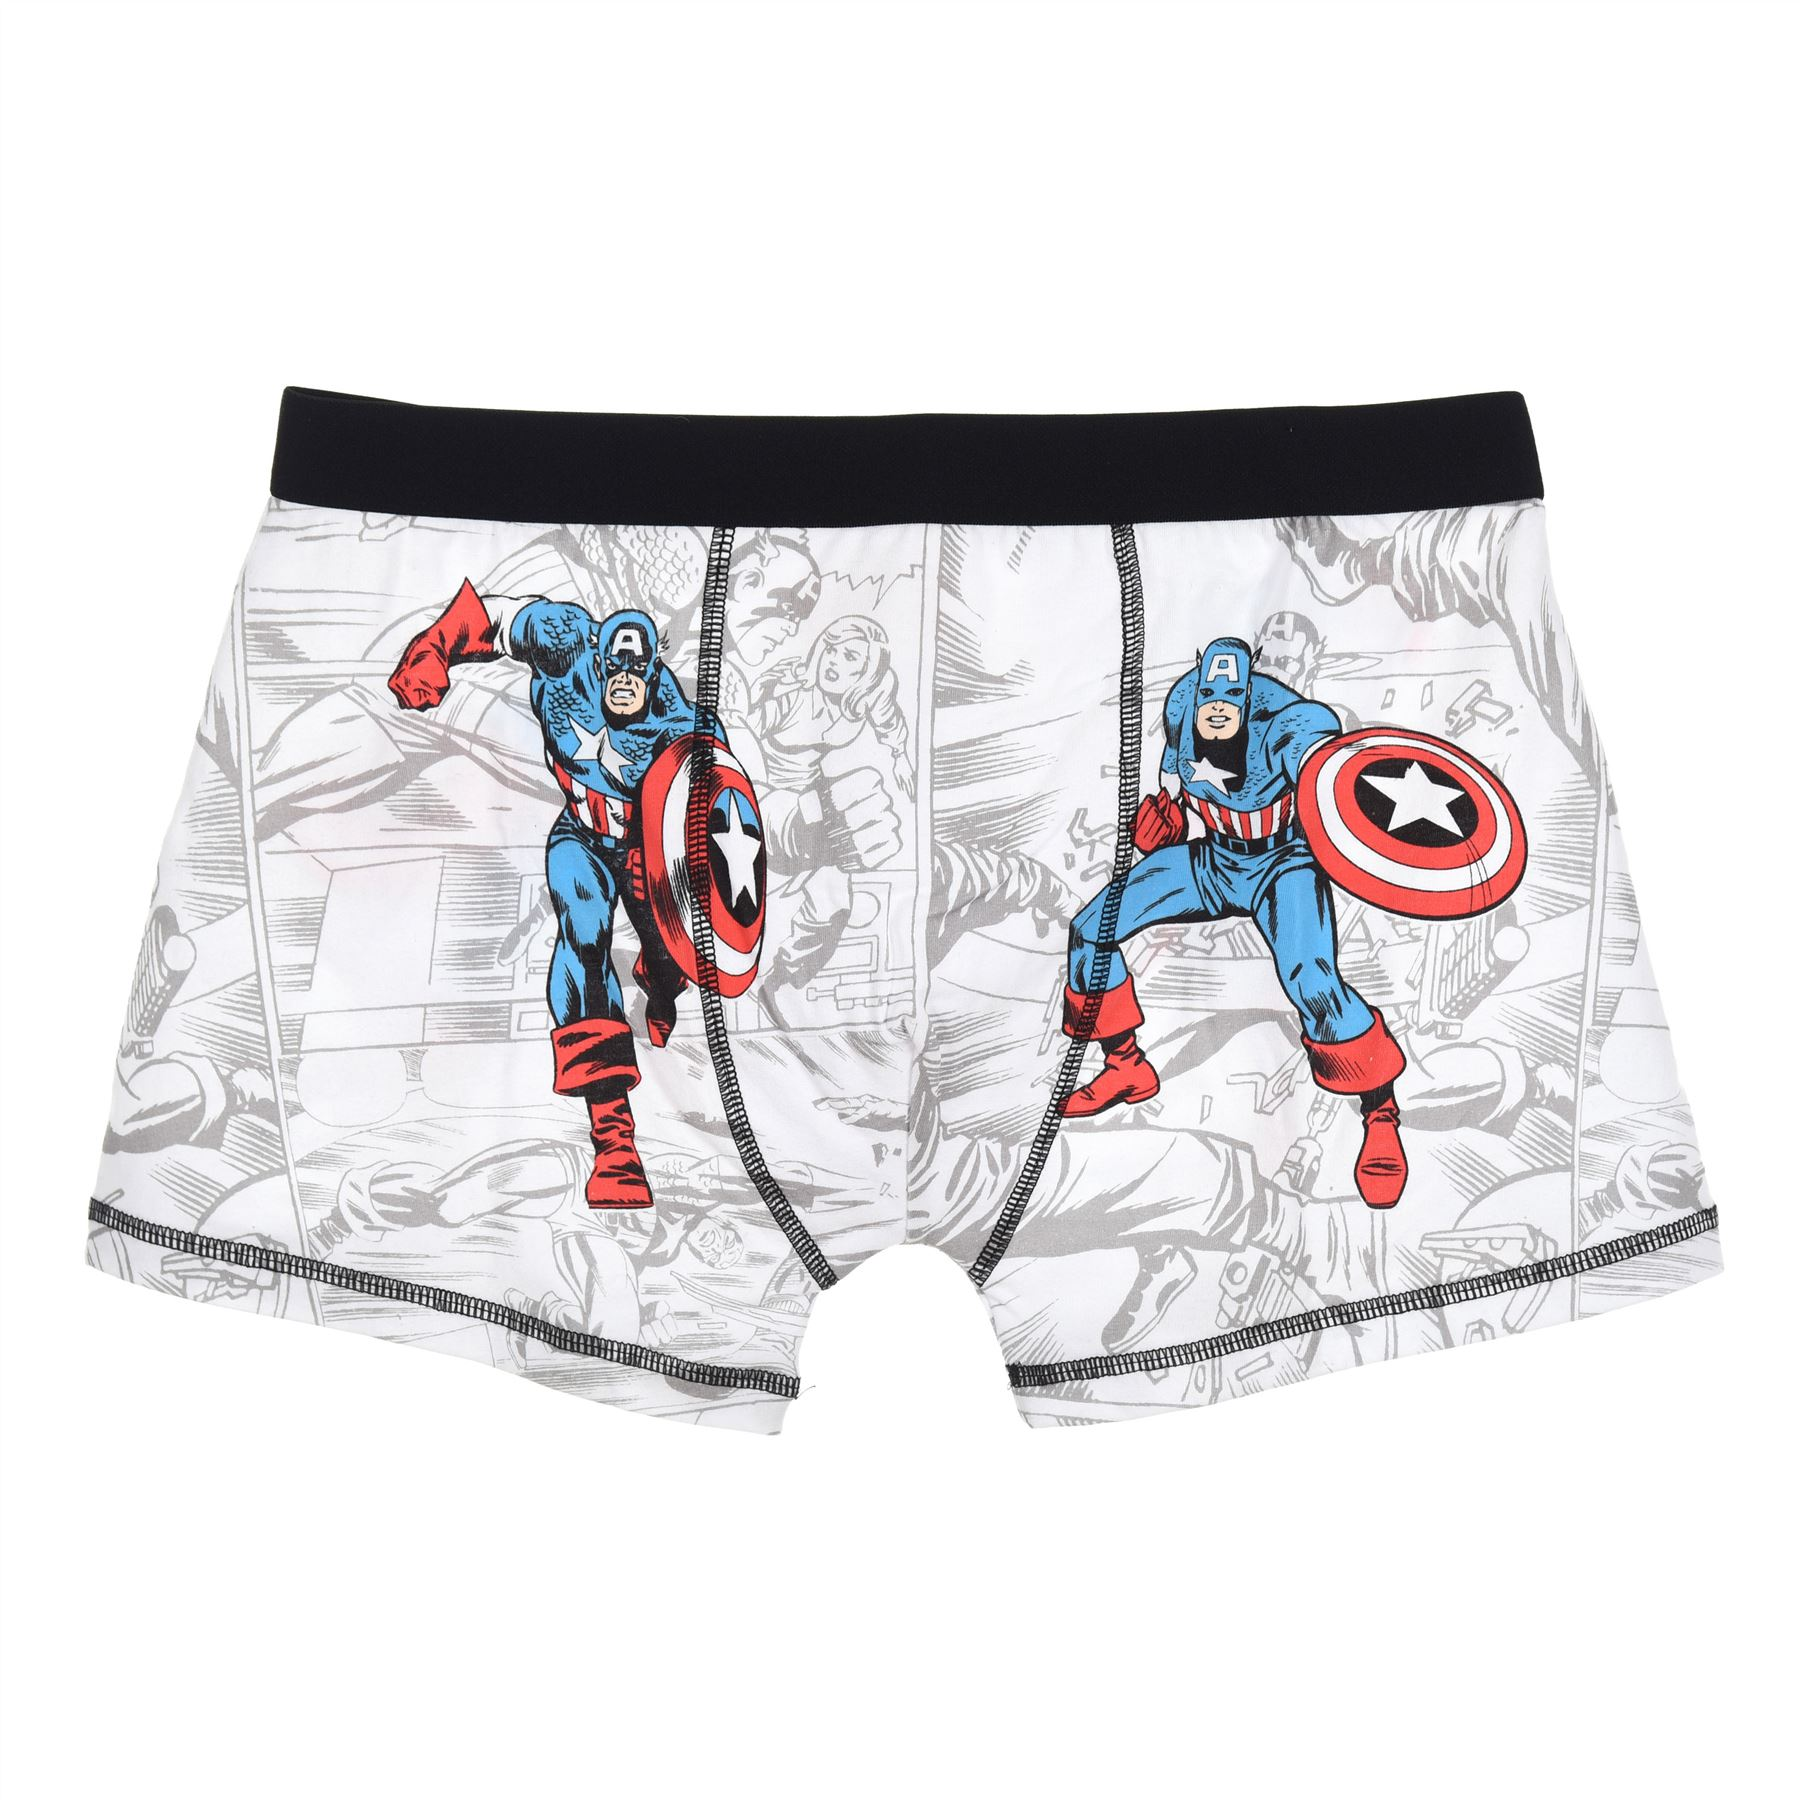 Mens-Official-Character-Trunks-Boxer-Shorts-Boxers-Underwear-2-Pack-Size-S-XL thumbnail 20